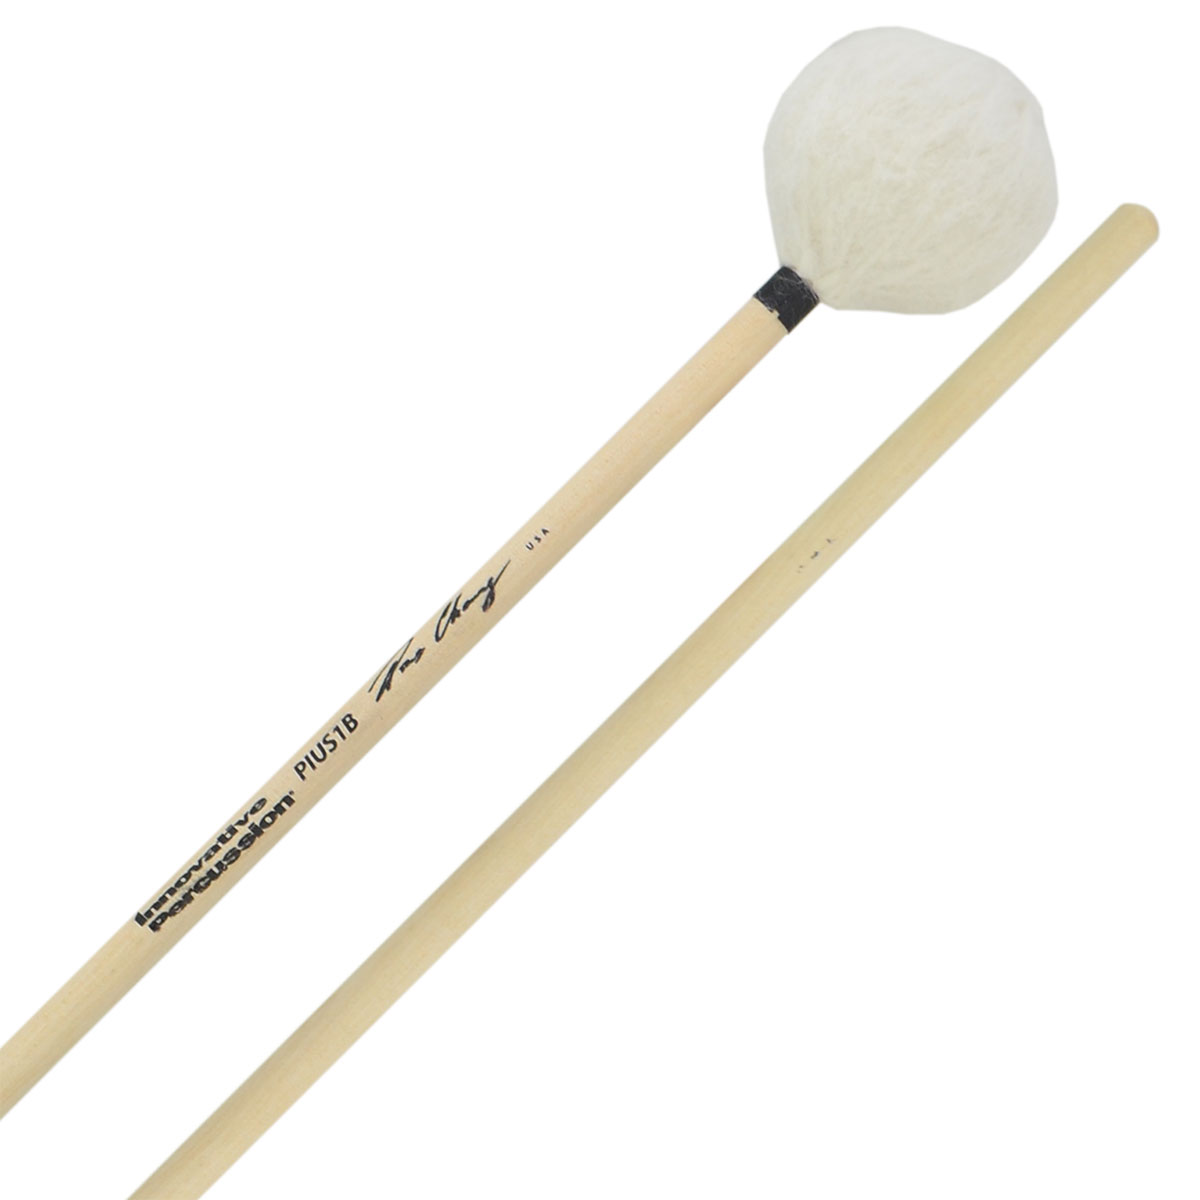 Innovative Percussion Pius Cheung Soft Marimba Mallets with Birch Handles